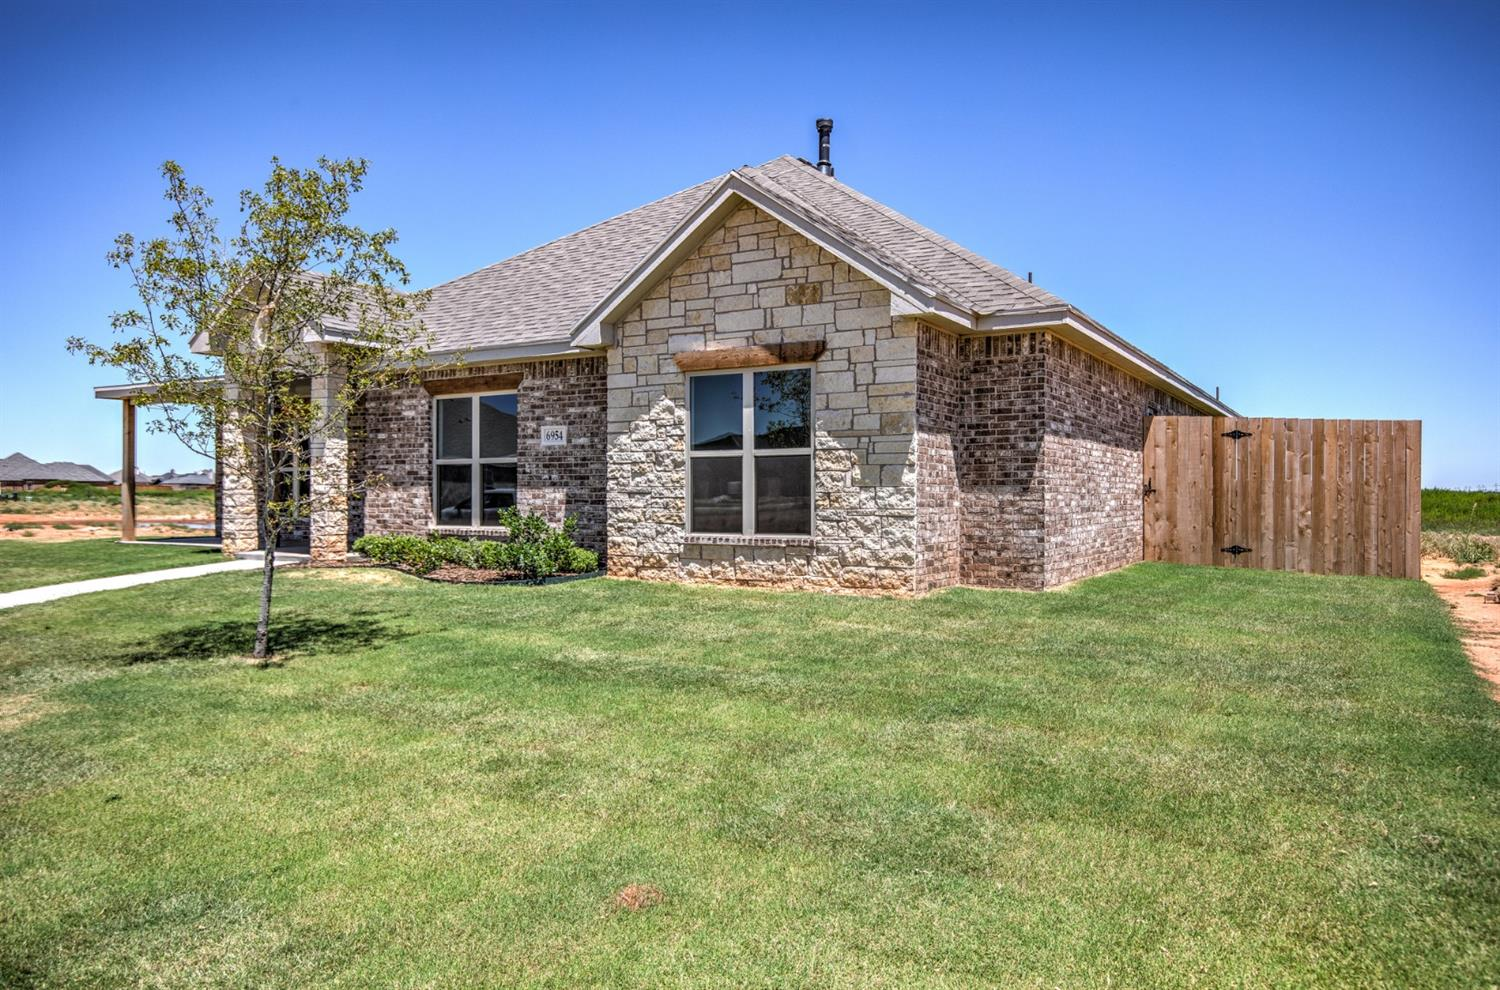 Custom Home located in the highly desired Frenship School District! Feel the luxury when walking into this well crafted home full of natural light, open concept and tons of storage. Gorgeous wood tile throughout with a stone fireplace and built in cabinets on either side. Fall in love with the gourmet kitchen boasting cabinets to ceiling, granite countertops, stainless steel appliances, large walk in panty, built in oven and gas range. Storage room that could be used as an office or as storage. Secluded large master suite with spa like master bathroom. 3 Spacious guest bedrooms with one bedroom having its own secluded bathroom, perfect for mother-in-law suite. Oversized garage and huge covered patio.